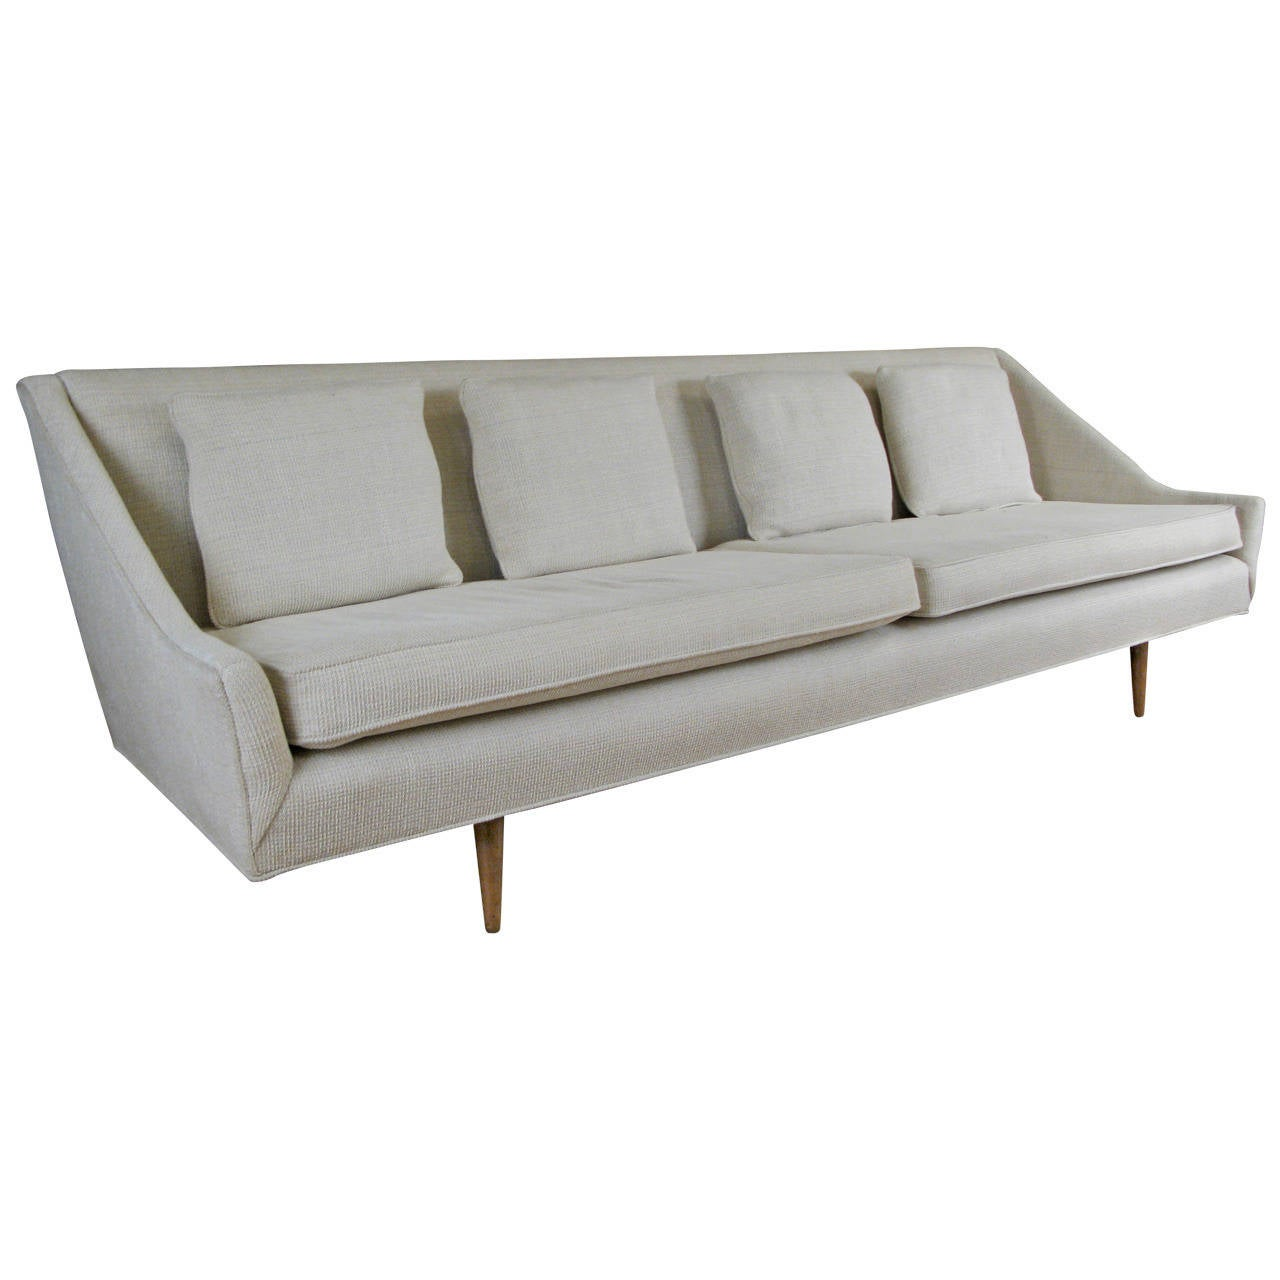 Vintage modern 1950s long sofa at 1stdibs for How long is a loveseat